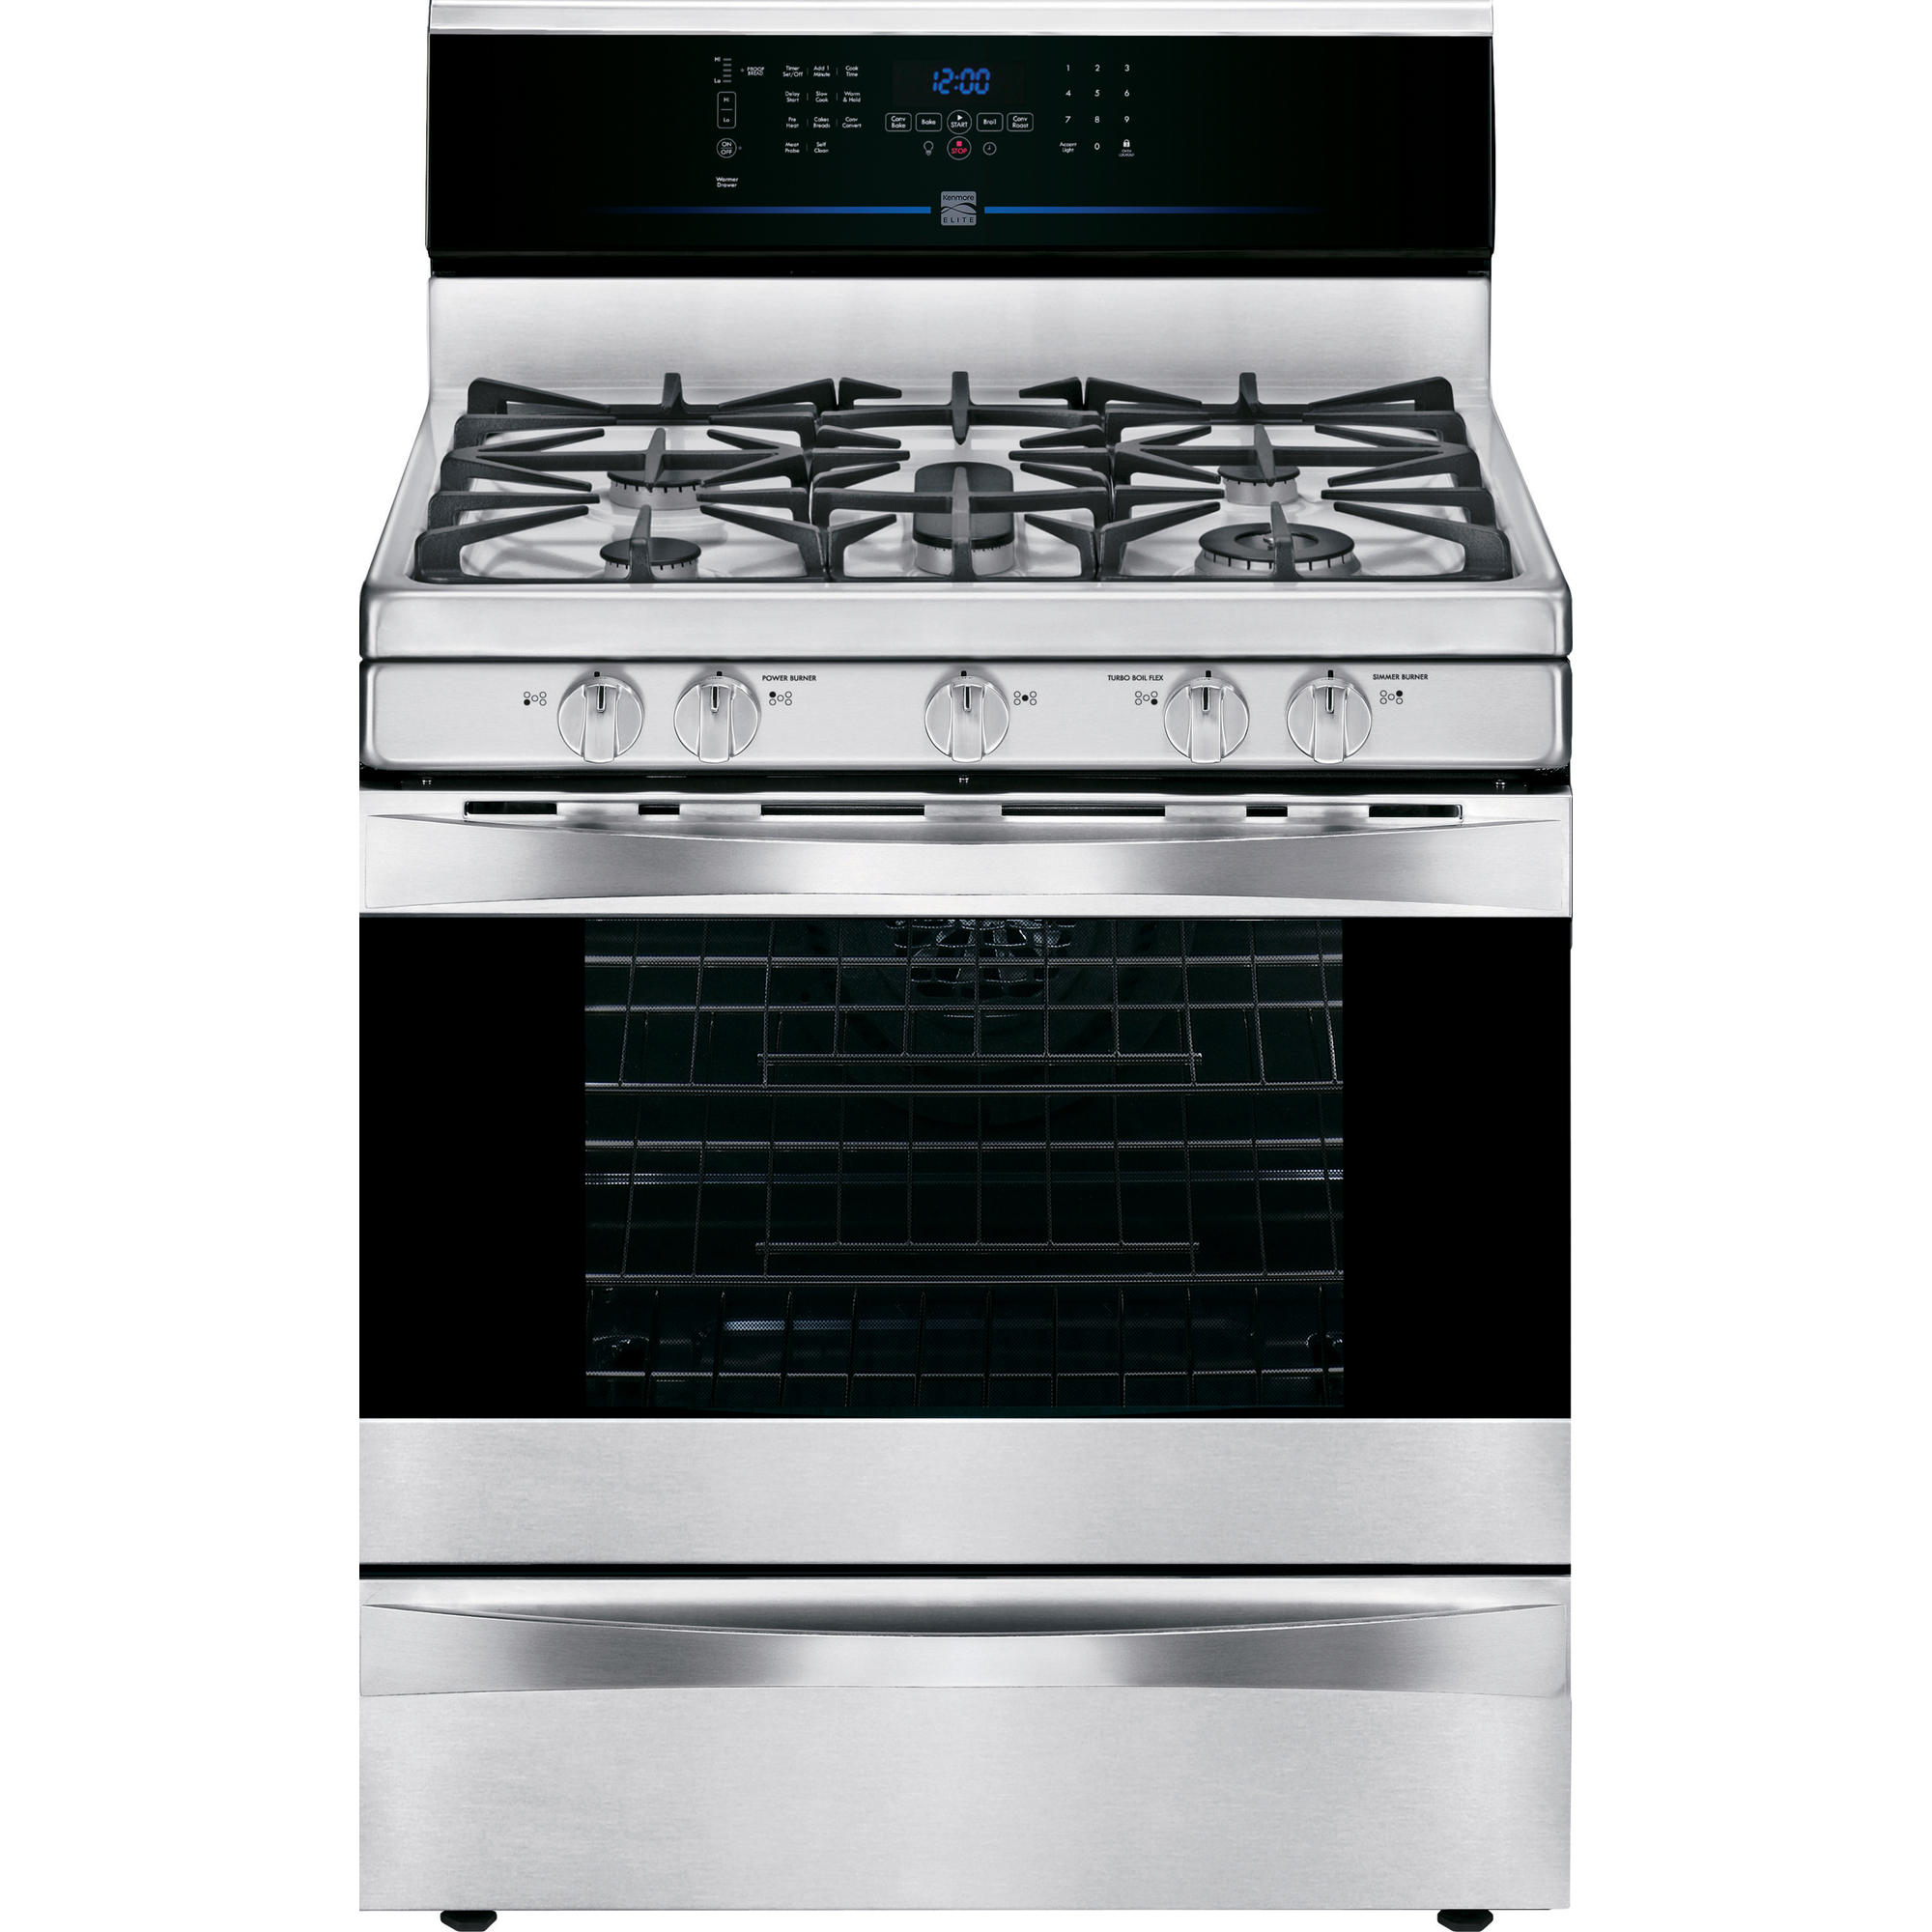 Kenmore-Elite-75343-5-6-cu-ft-Gas-Range-w-True-Convection-Stainless-Steel